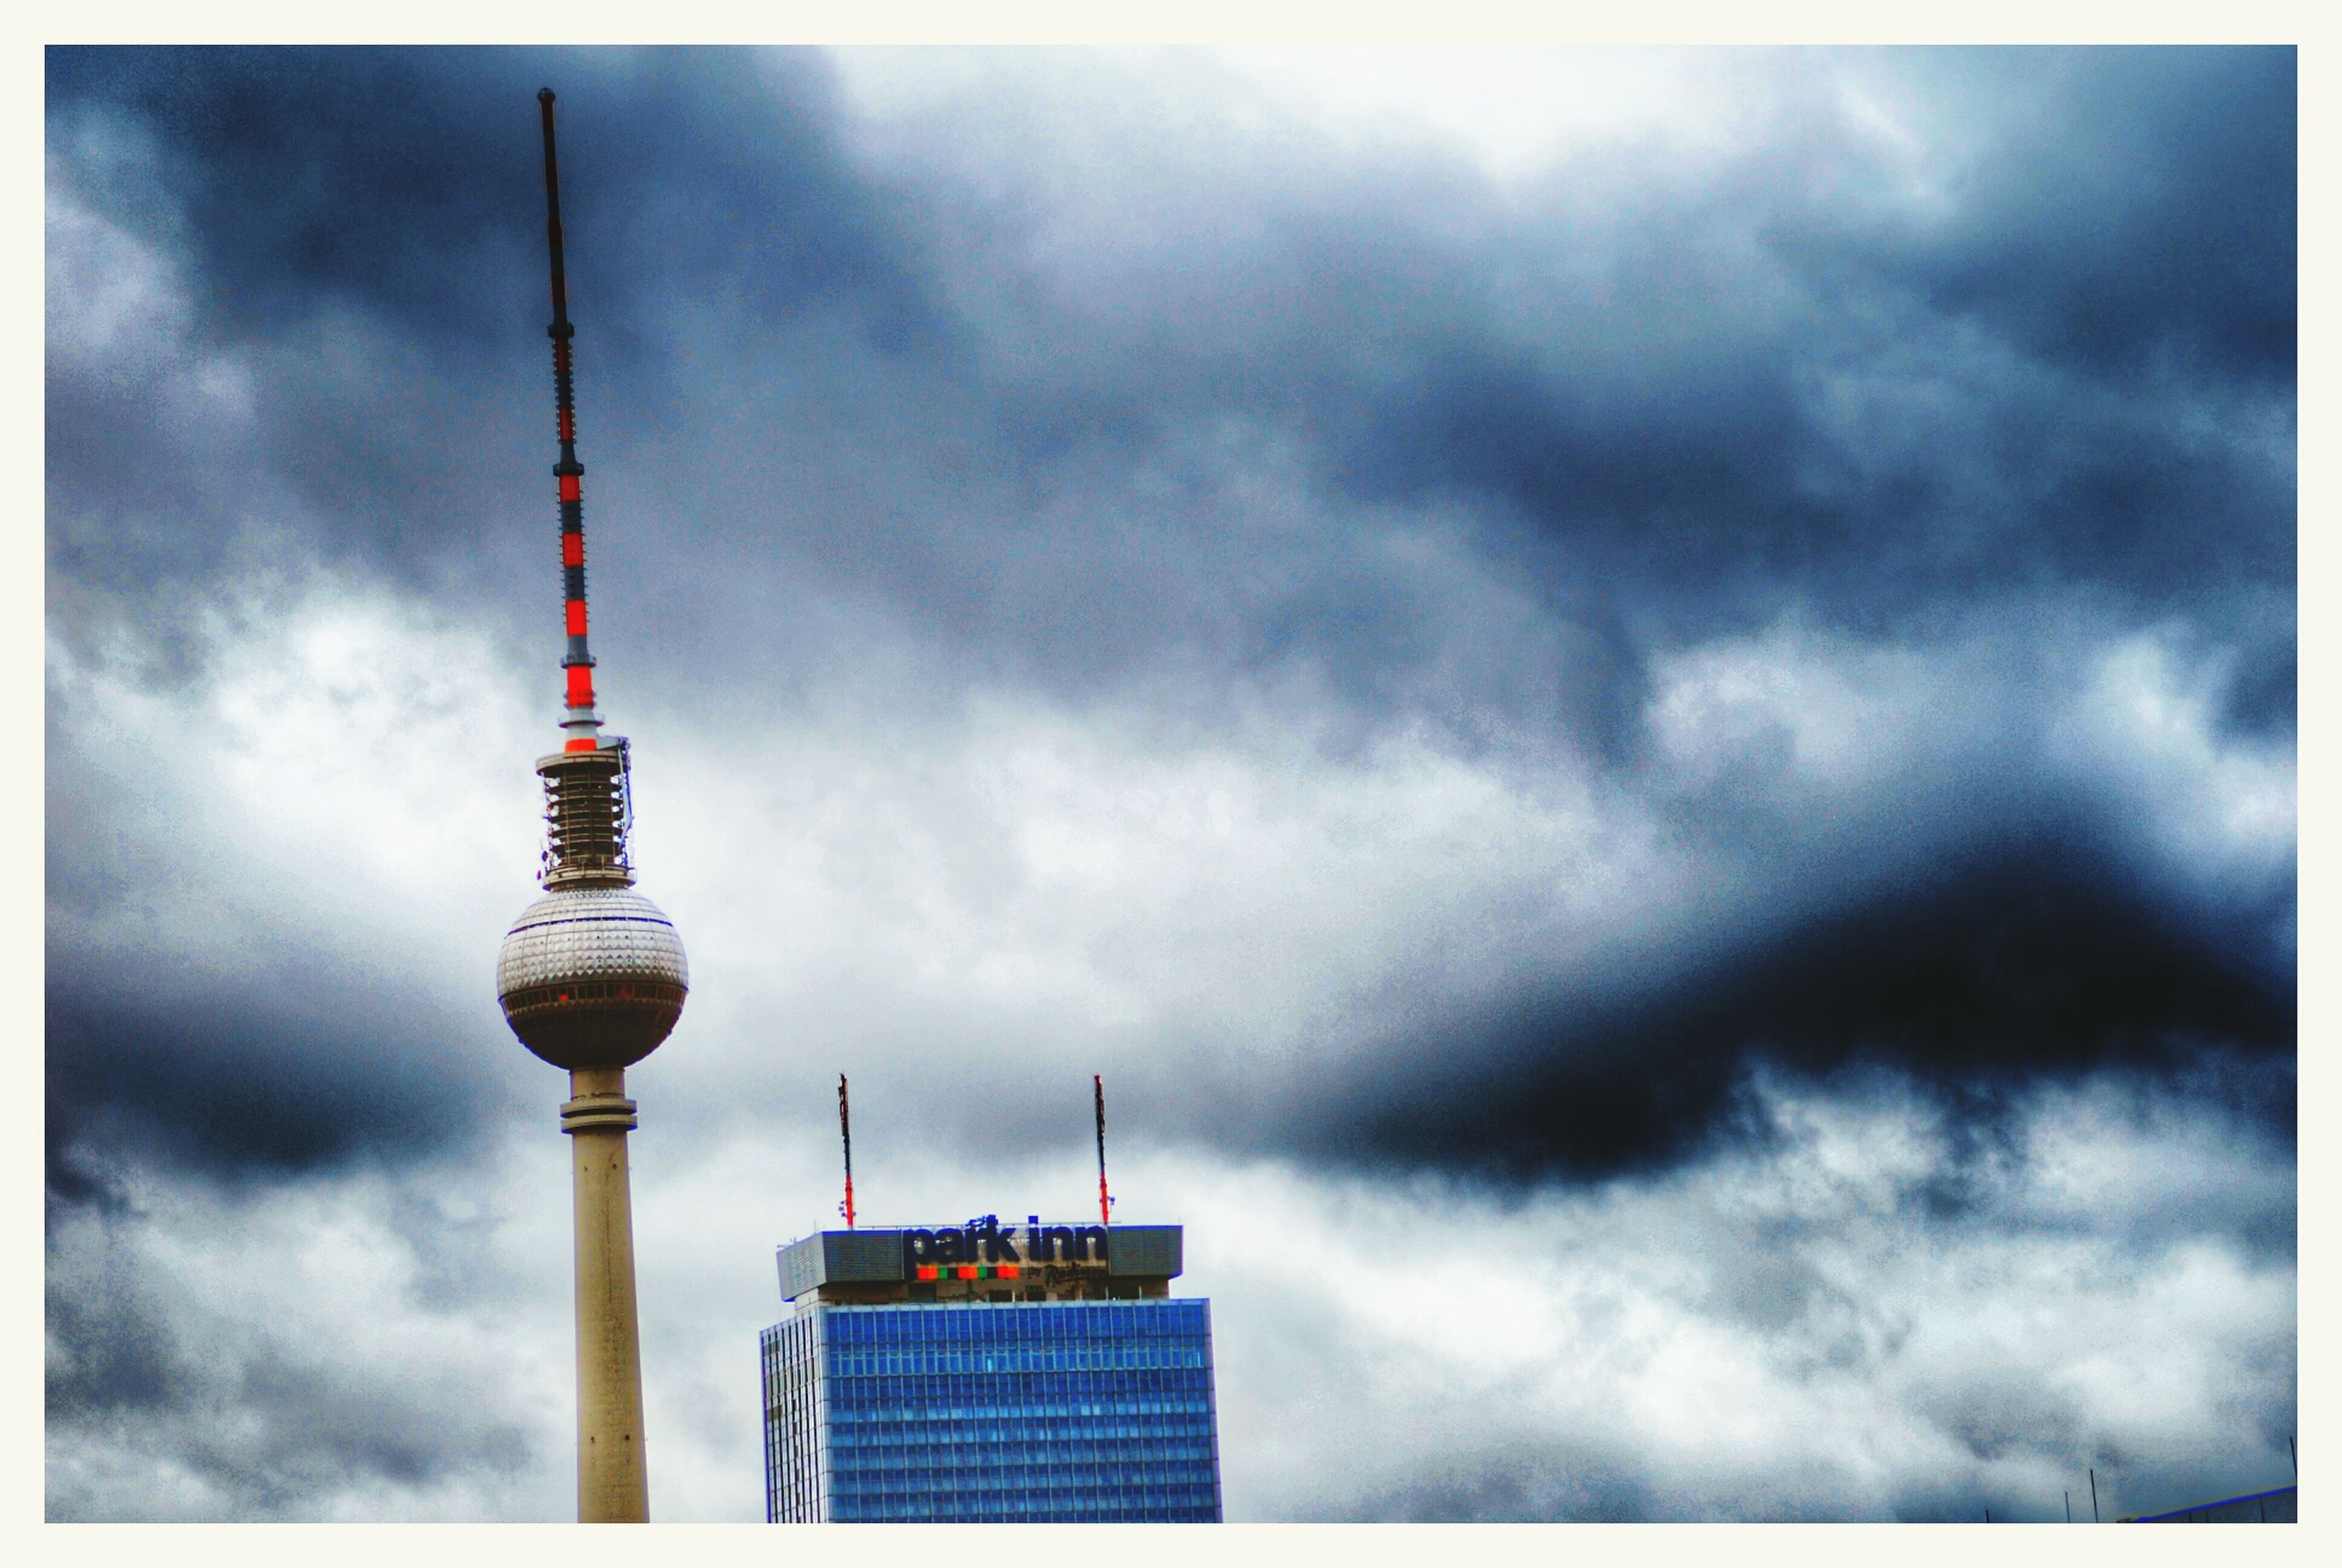 sky, architecture, built structure, tower, cloud - sky, building exterior, low angle view, cloudy, tall - high, communications tower, communication, transfer print, auto post production filter, weather, cloud, city, travel destinations, capital cities, overcast, tall